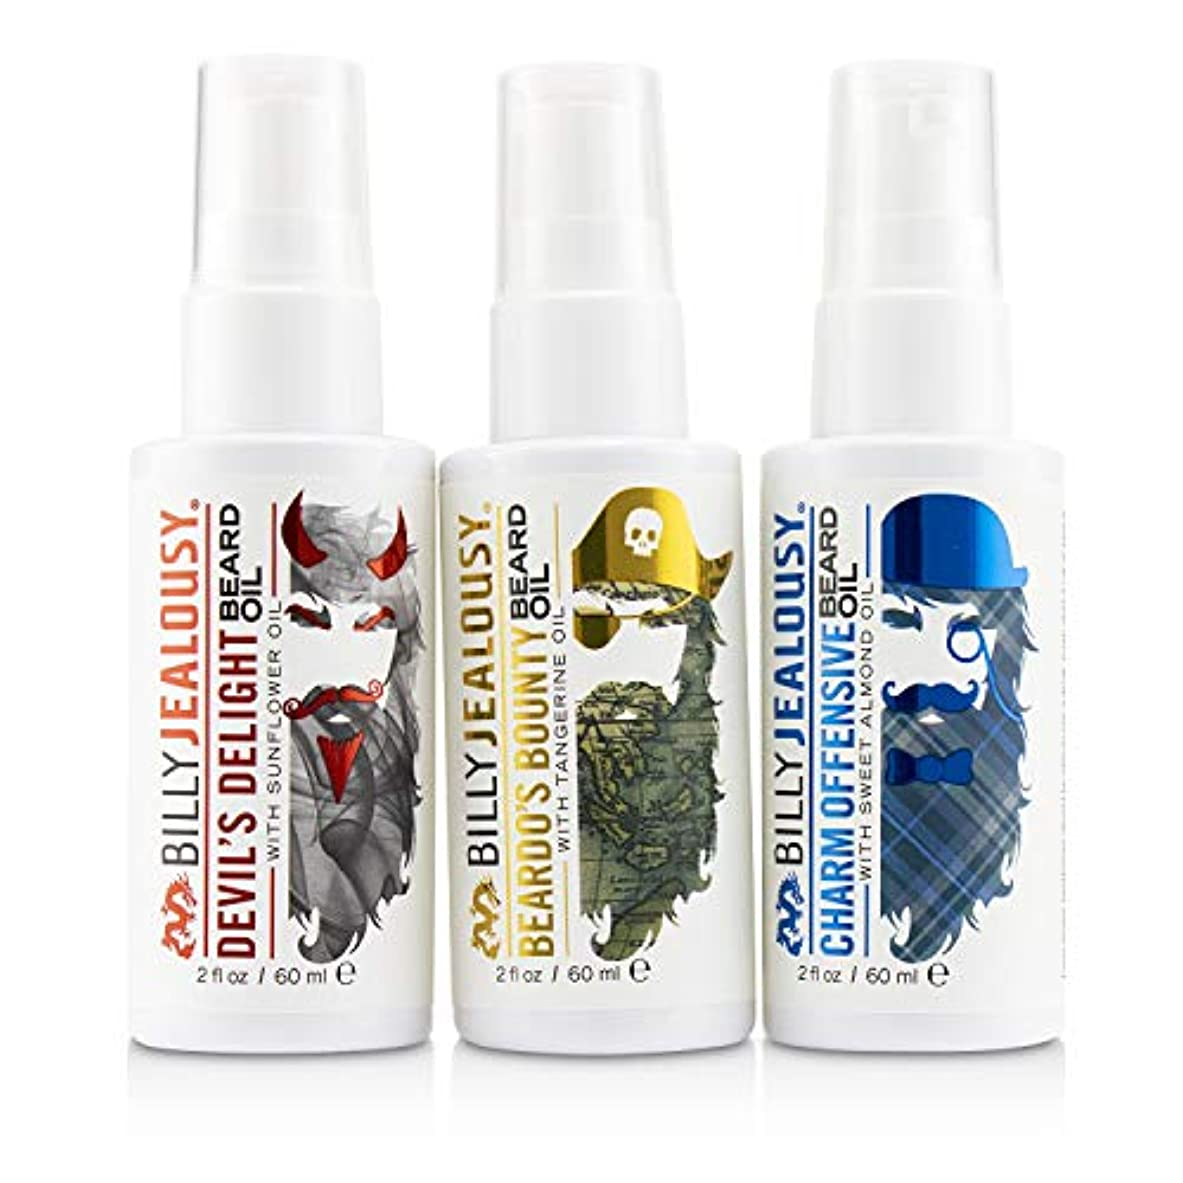 価値のない官僚パラダイスビリージェラシー 3 Amigos Beard Oil Trio Set : 1x Beardo's Bounty 60ml + 1x Devil's Delight 60ml + Charm Offensive 3pcs並行輸入品